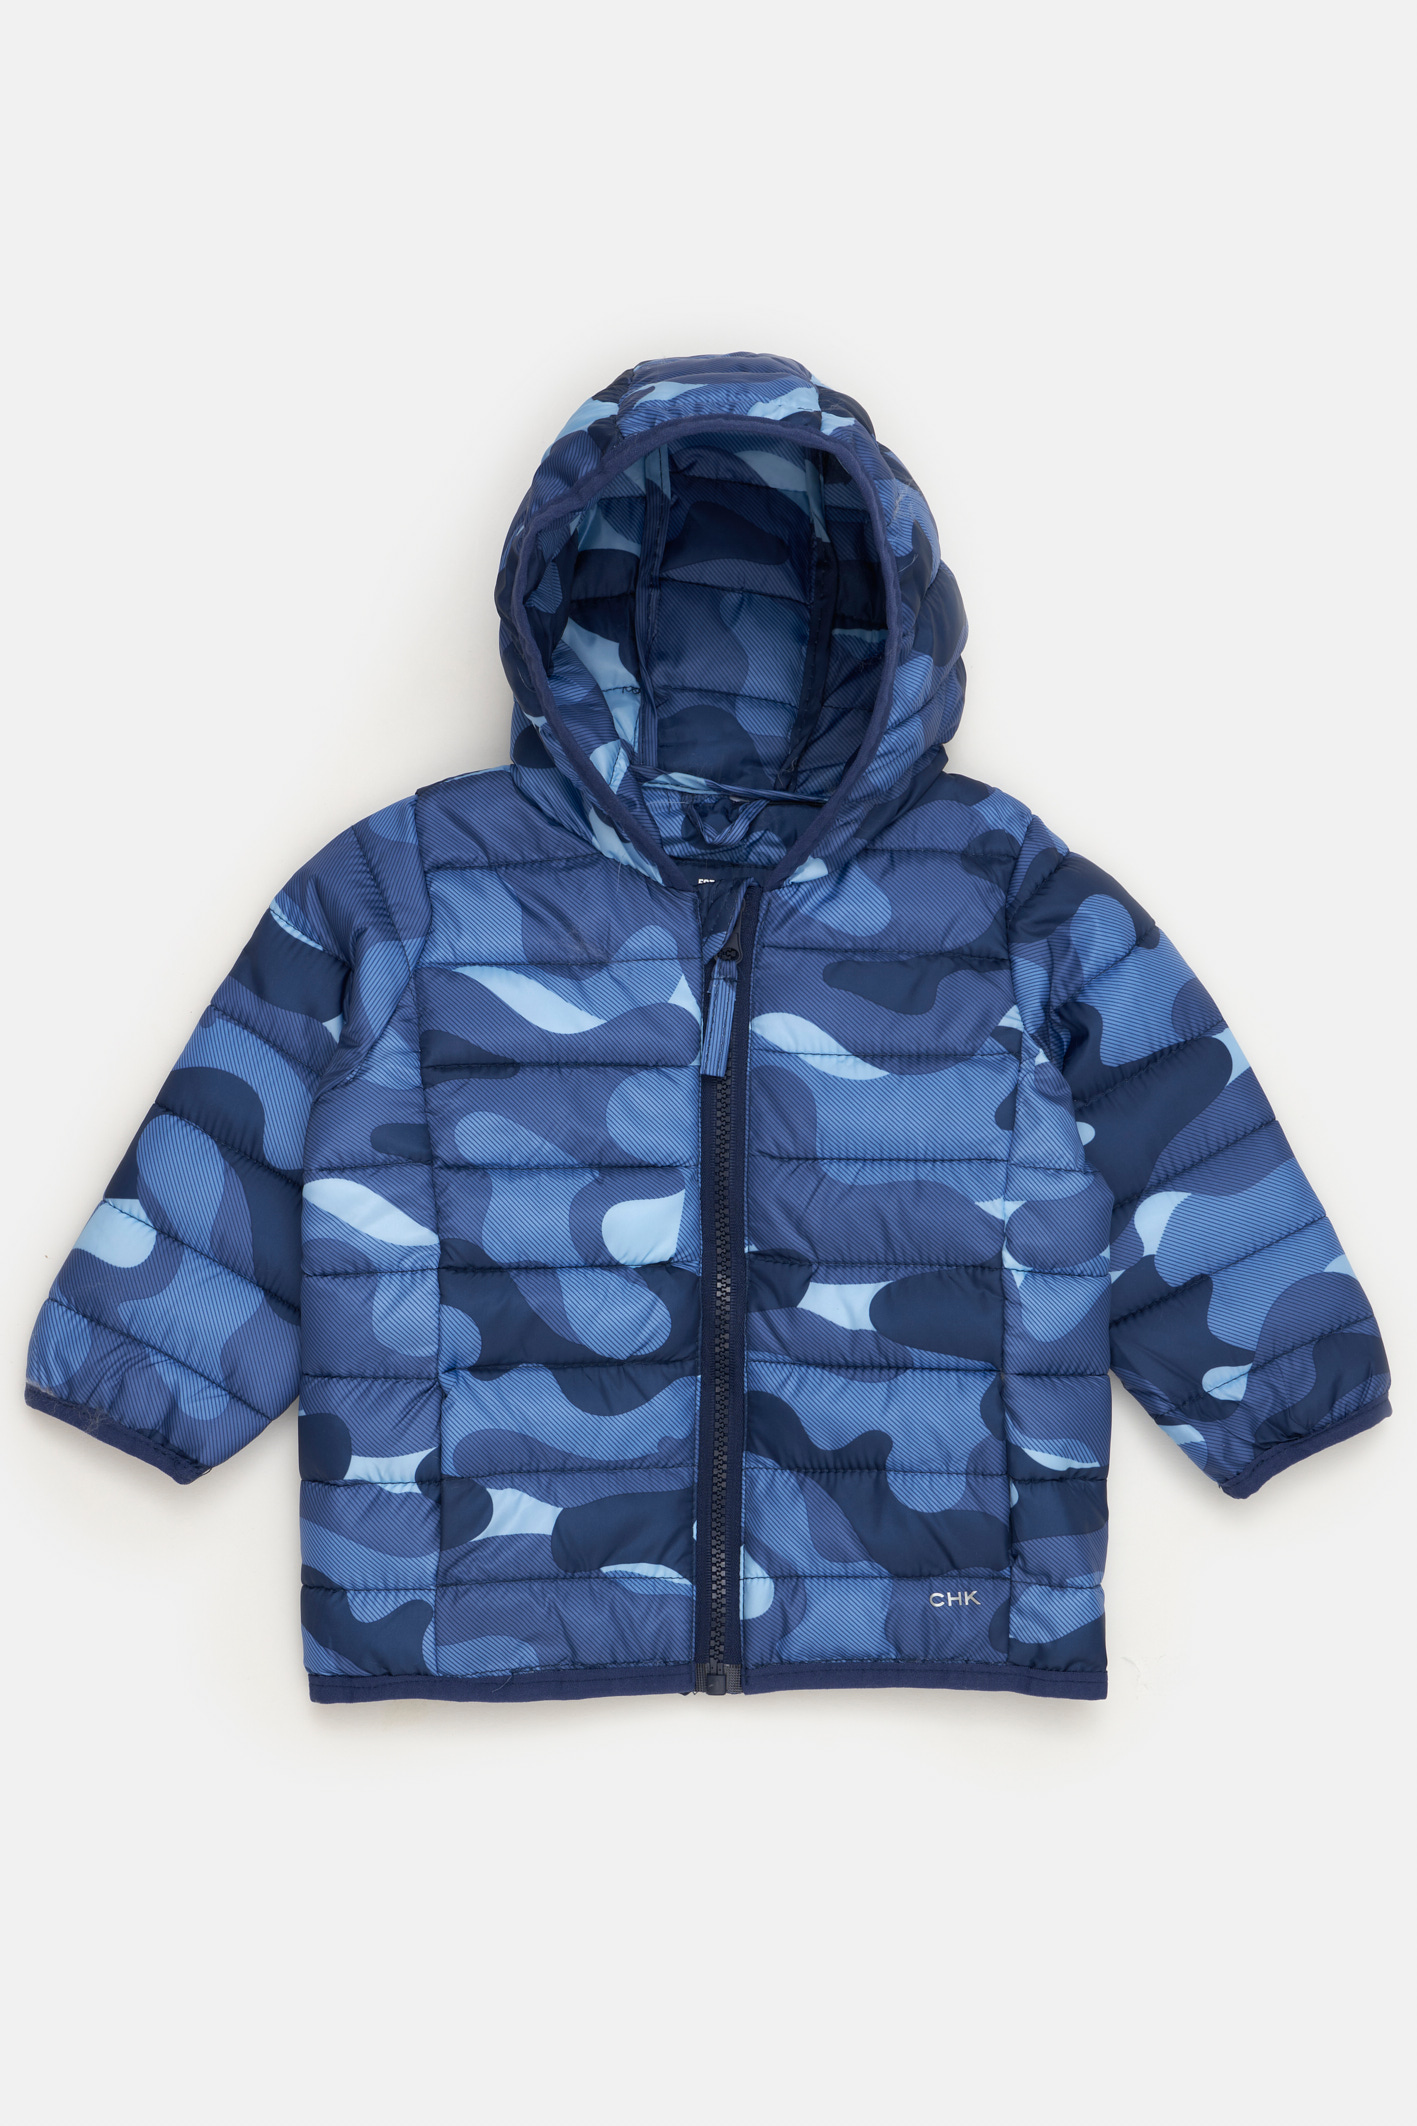 cheeky_campera-sky-soldier--boy-1-3_23-28-2021__picture-82774